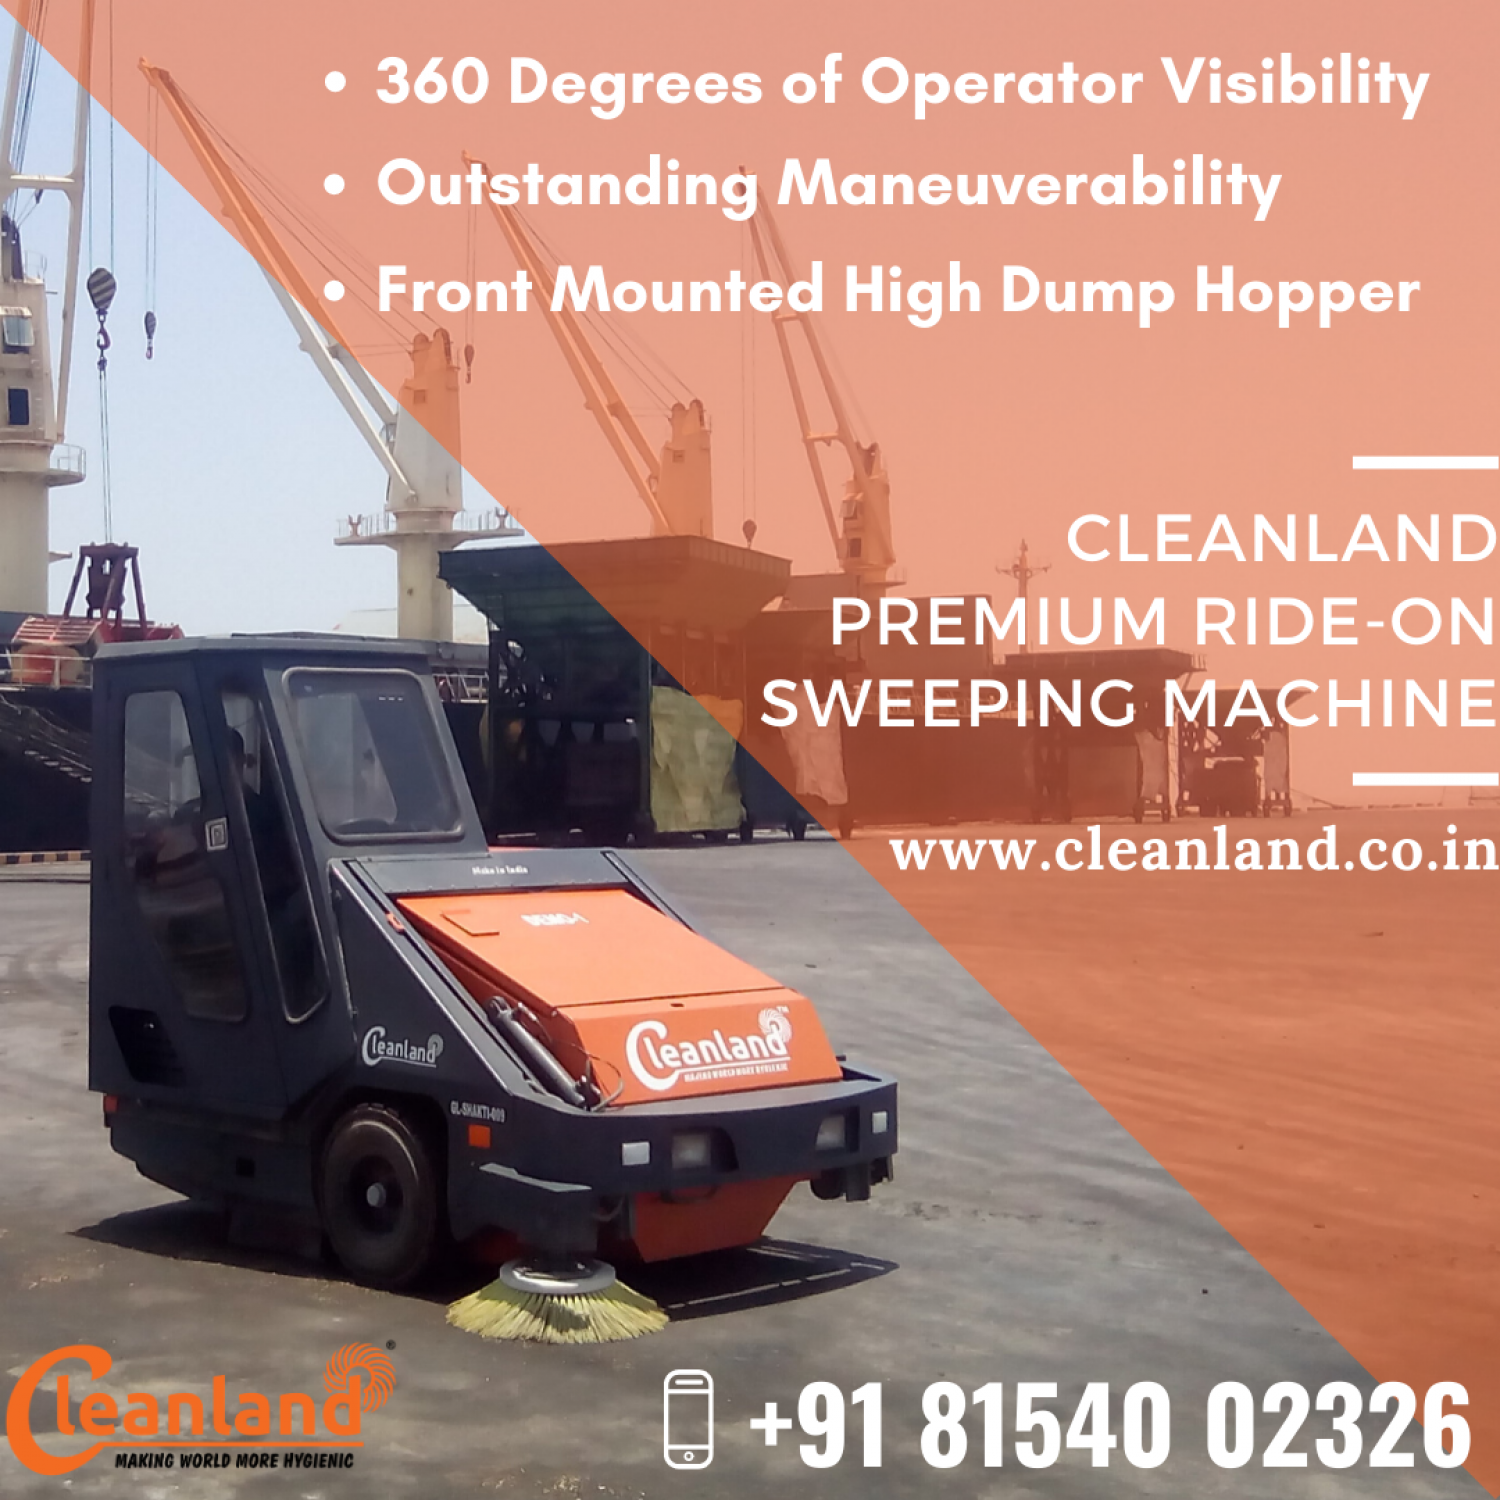 Meet the highest sweeping standards with CLEANLAND Premium Ride-On Sweeping Machine Infographic